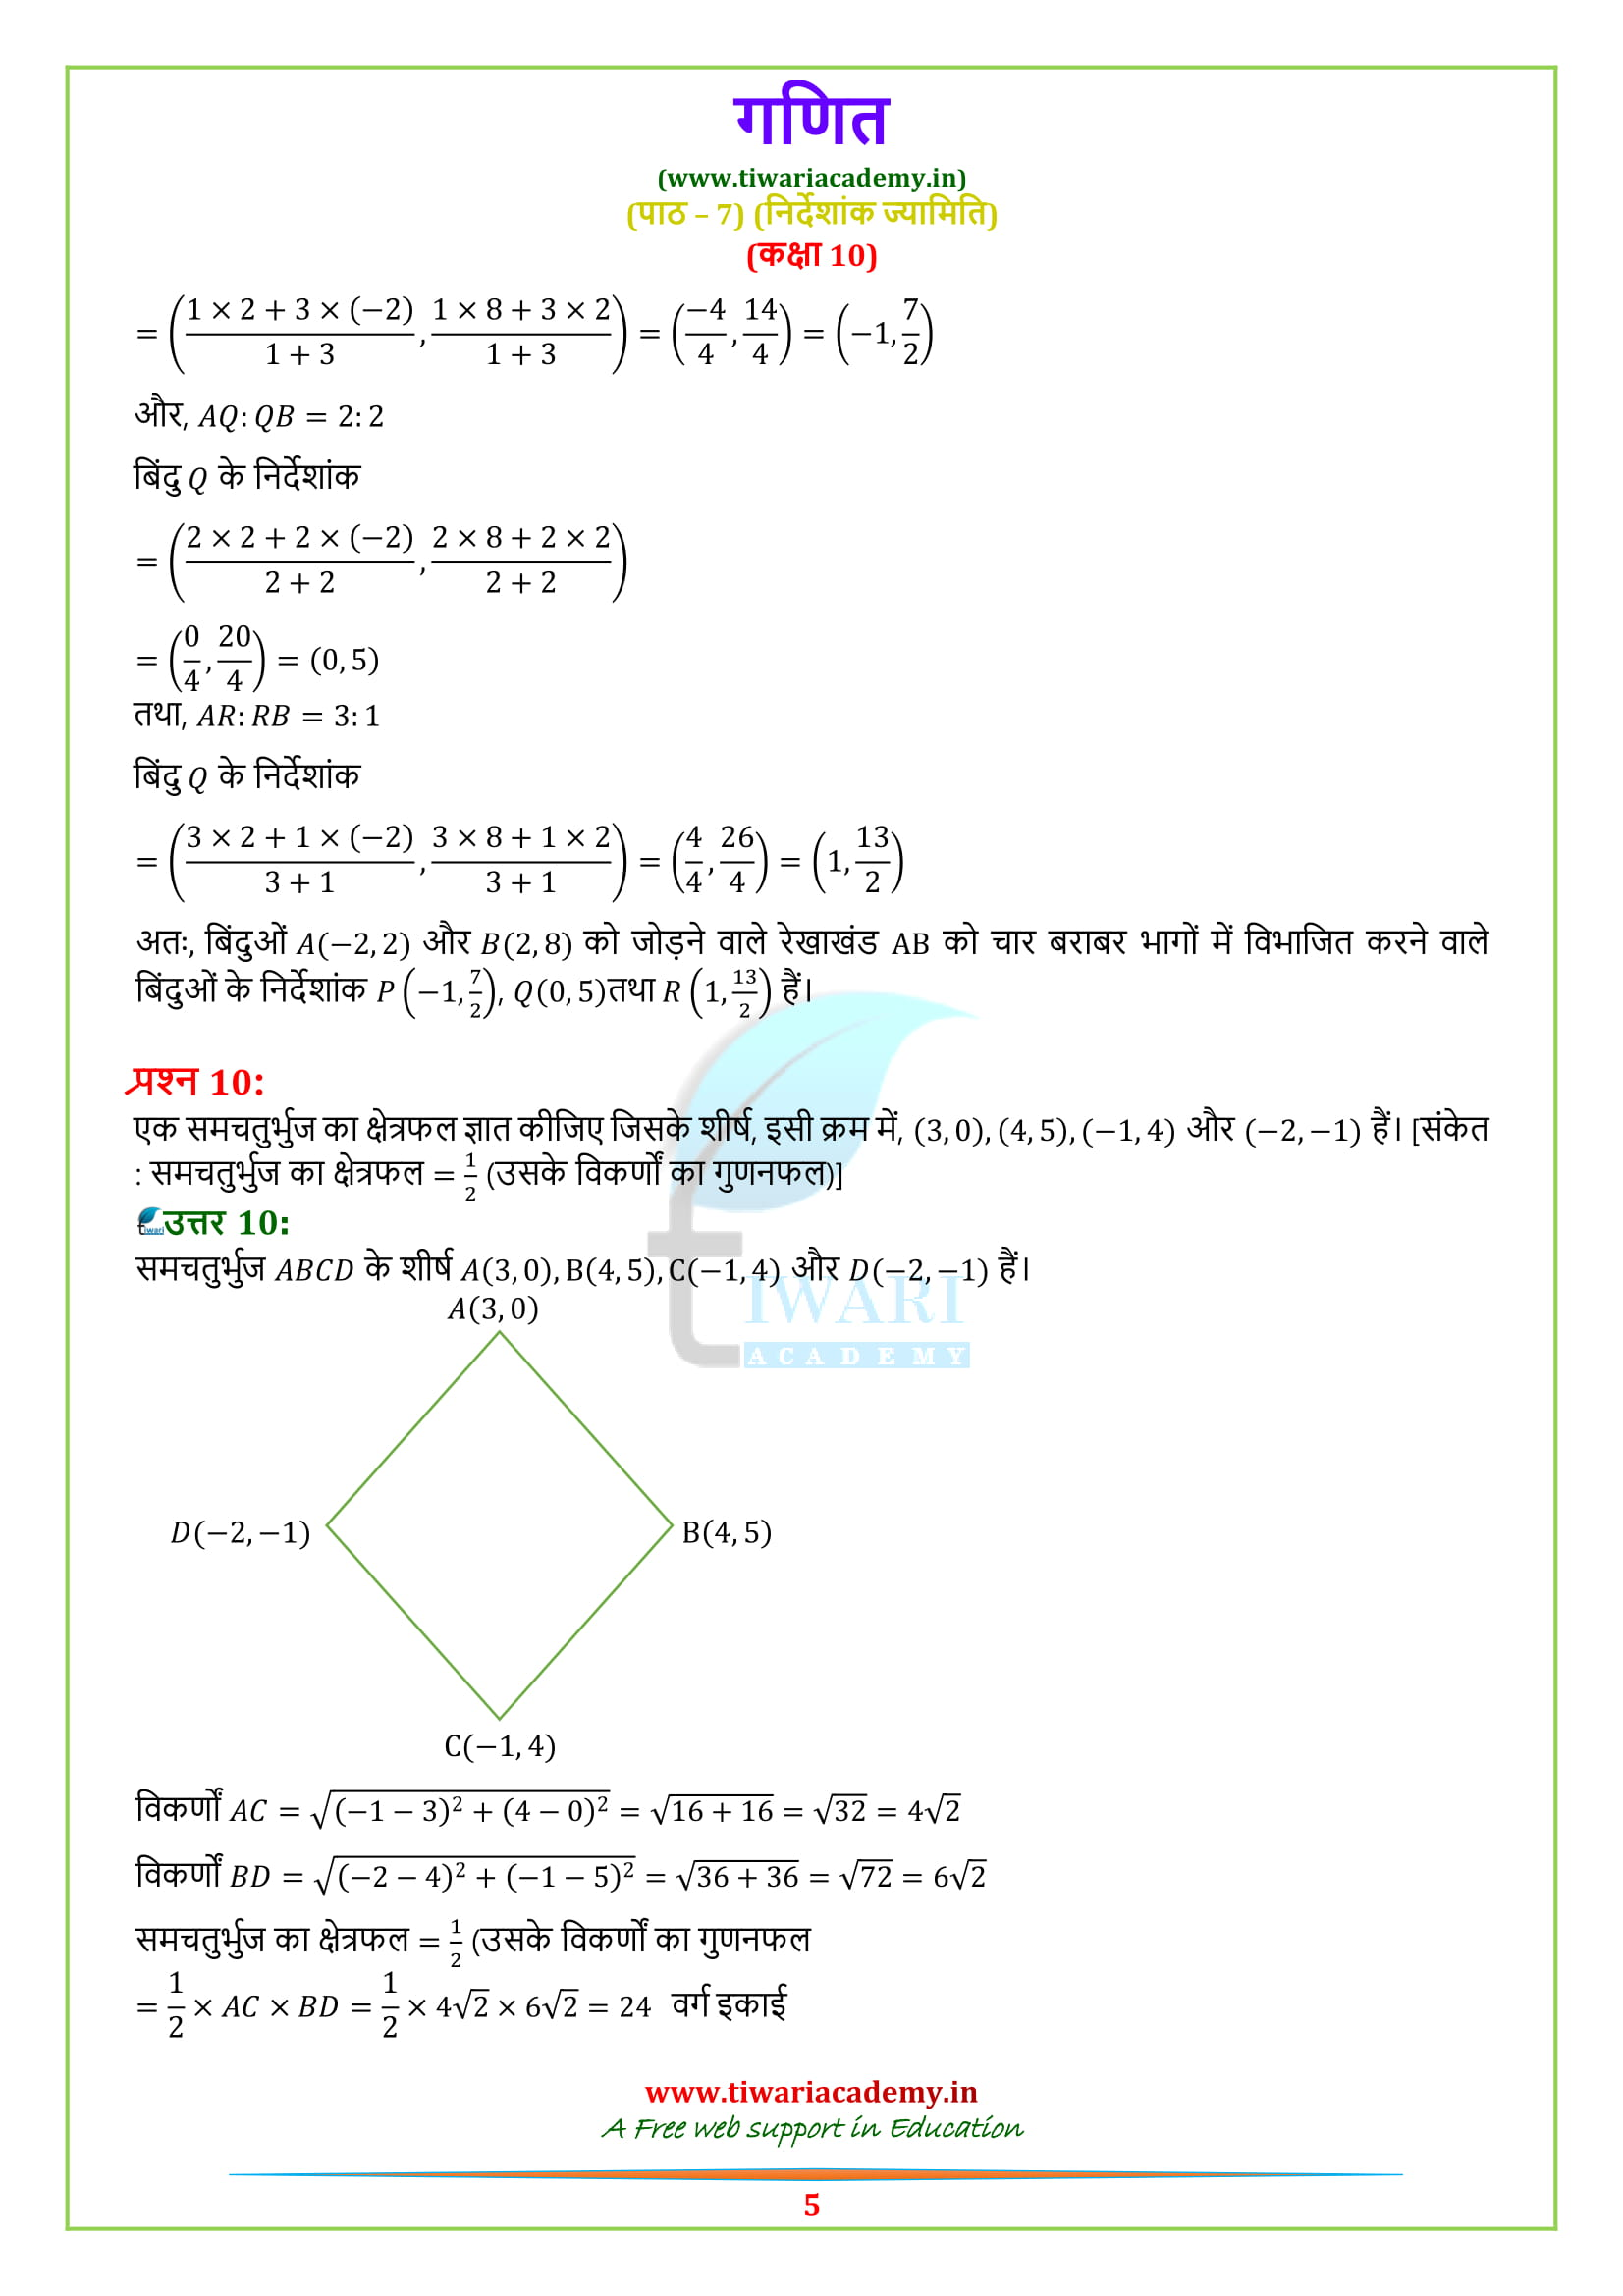 Class 10 Maths Exercise 7.2 Soluitons download free